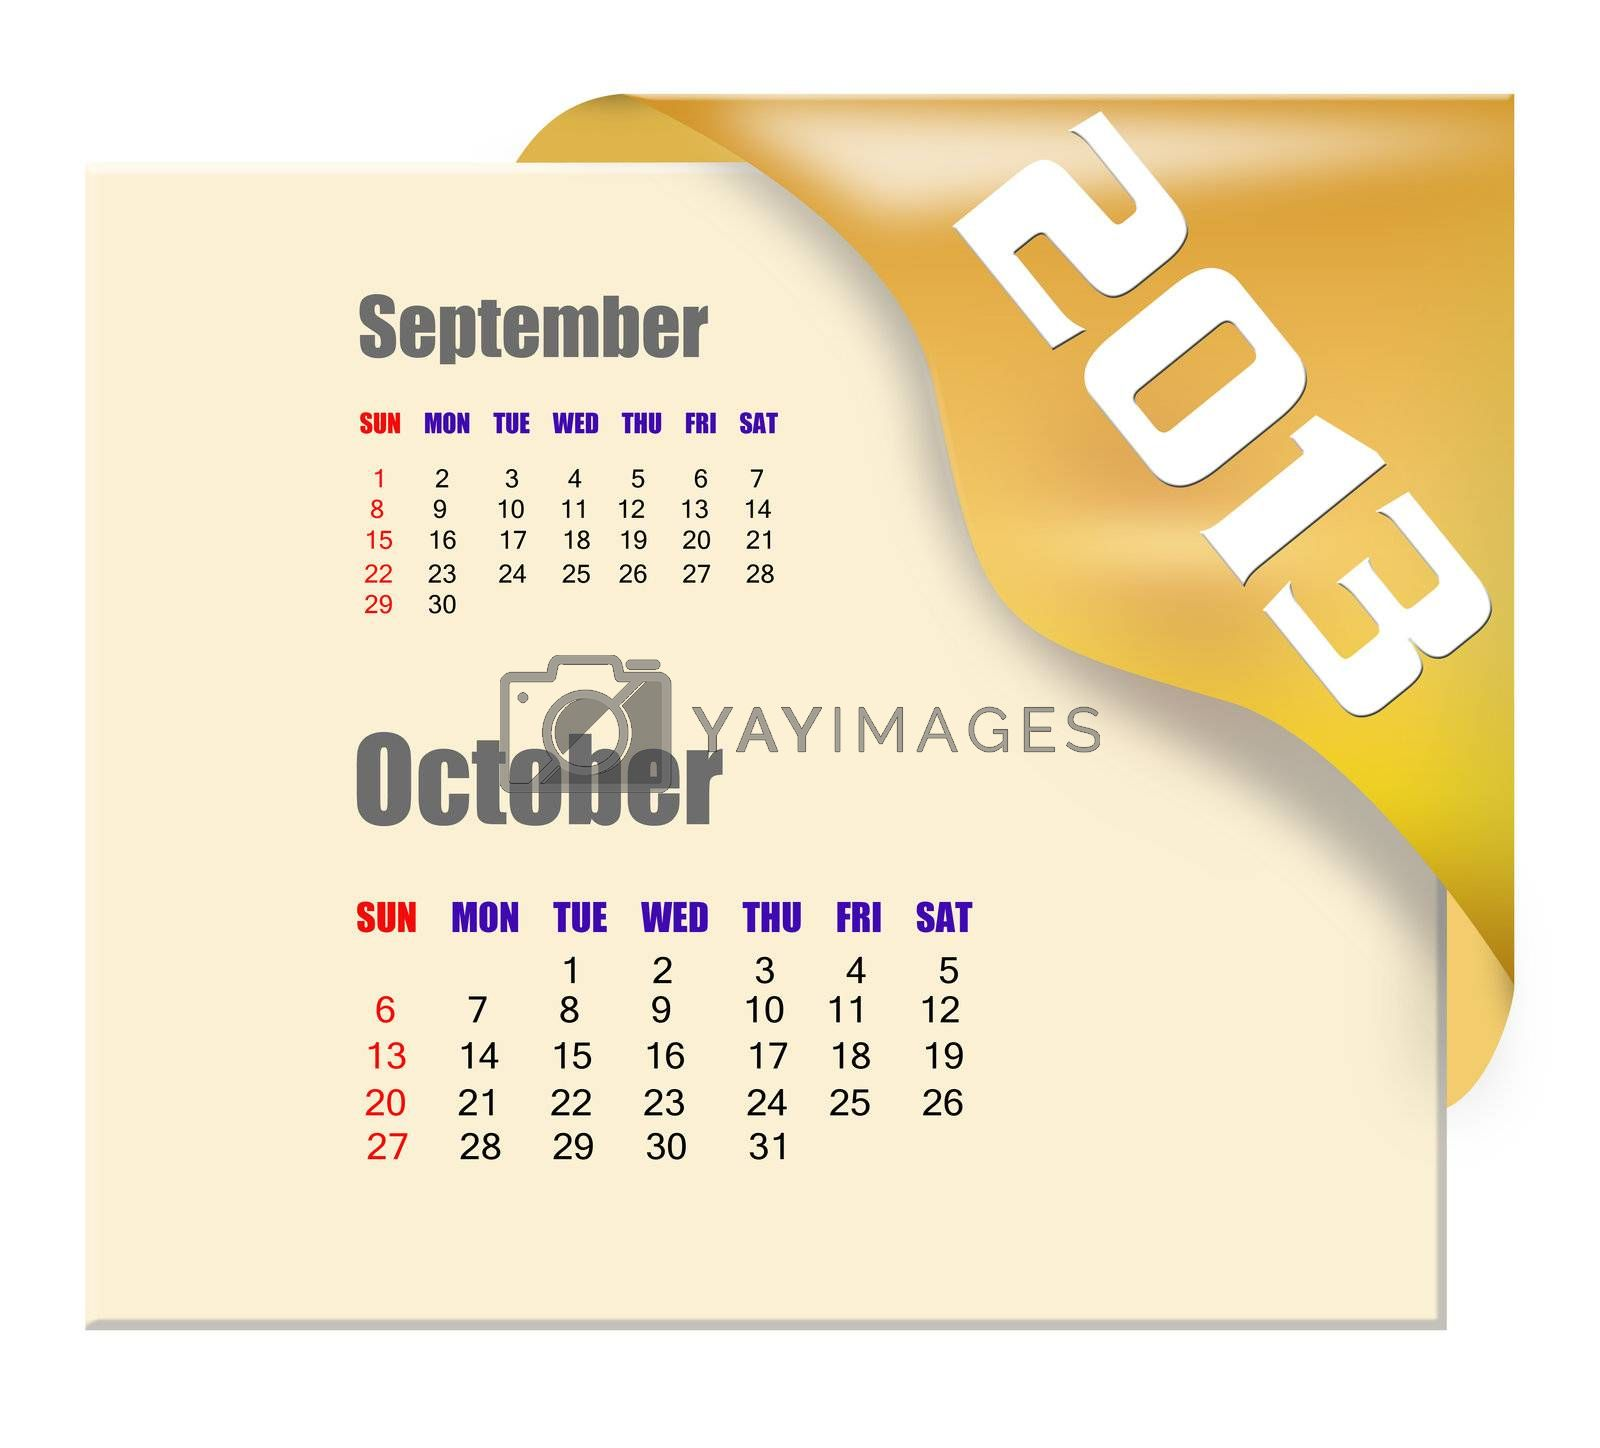 2013 October calendar  by payphoto